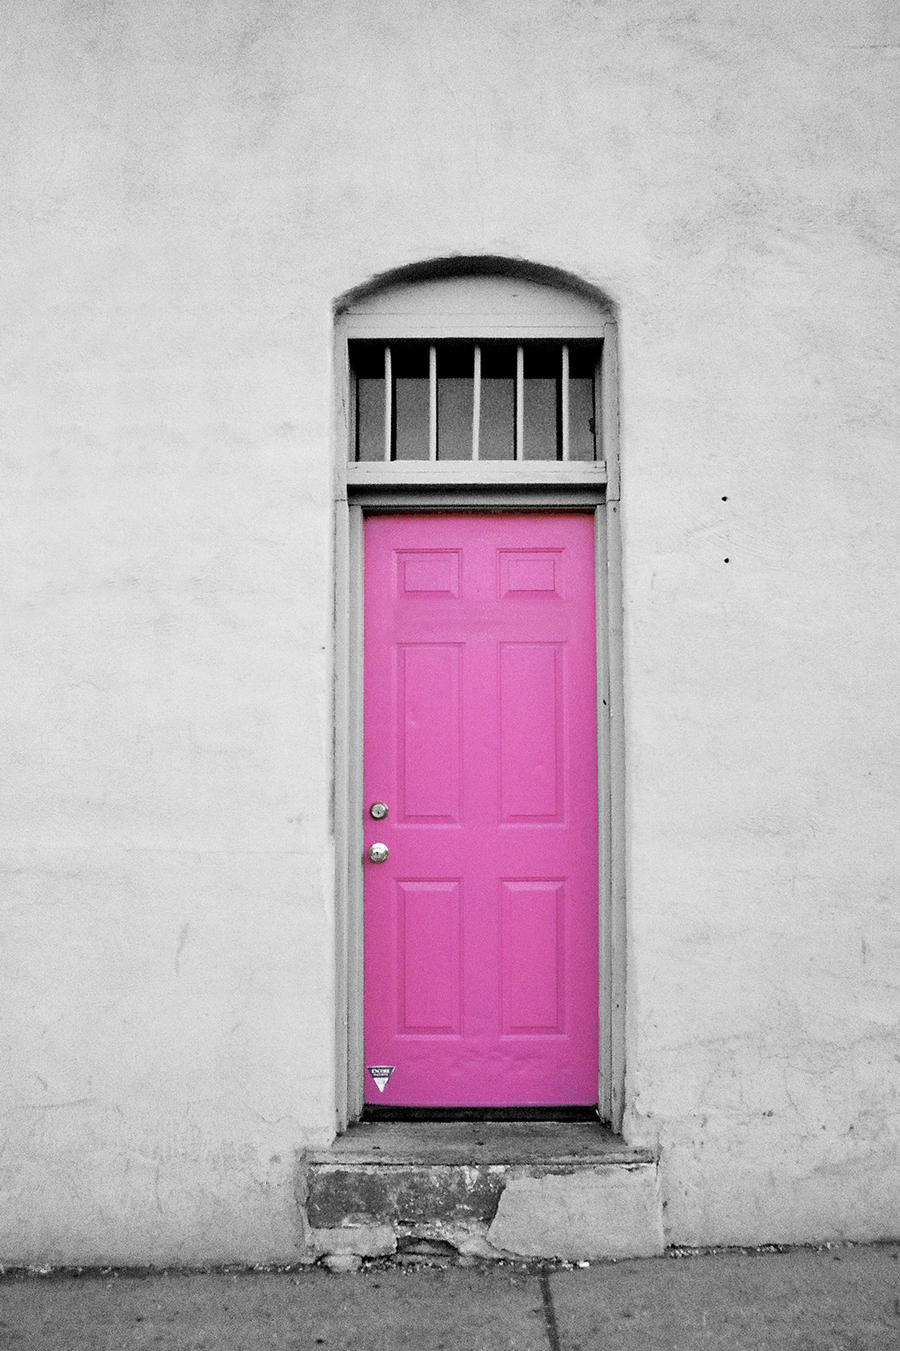 The Pink Door by AStaticPhotograph on DeviantArt hL2fi7un